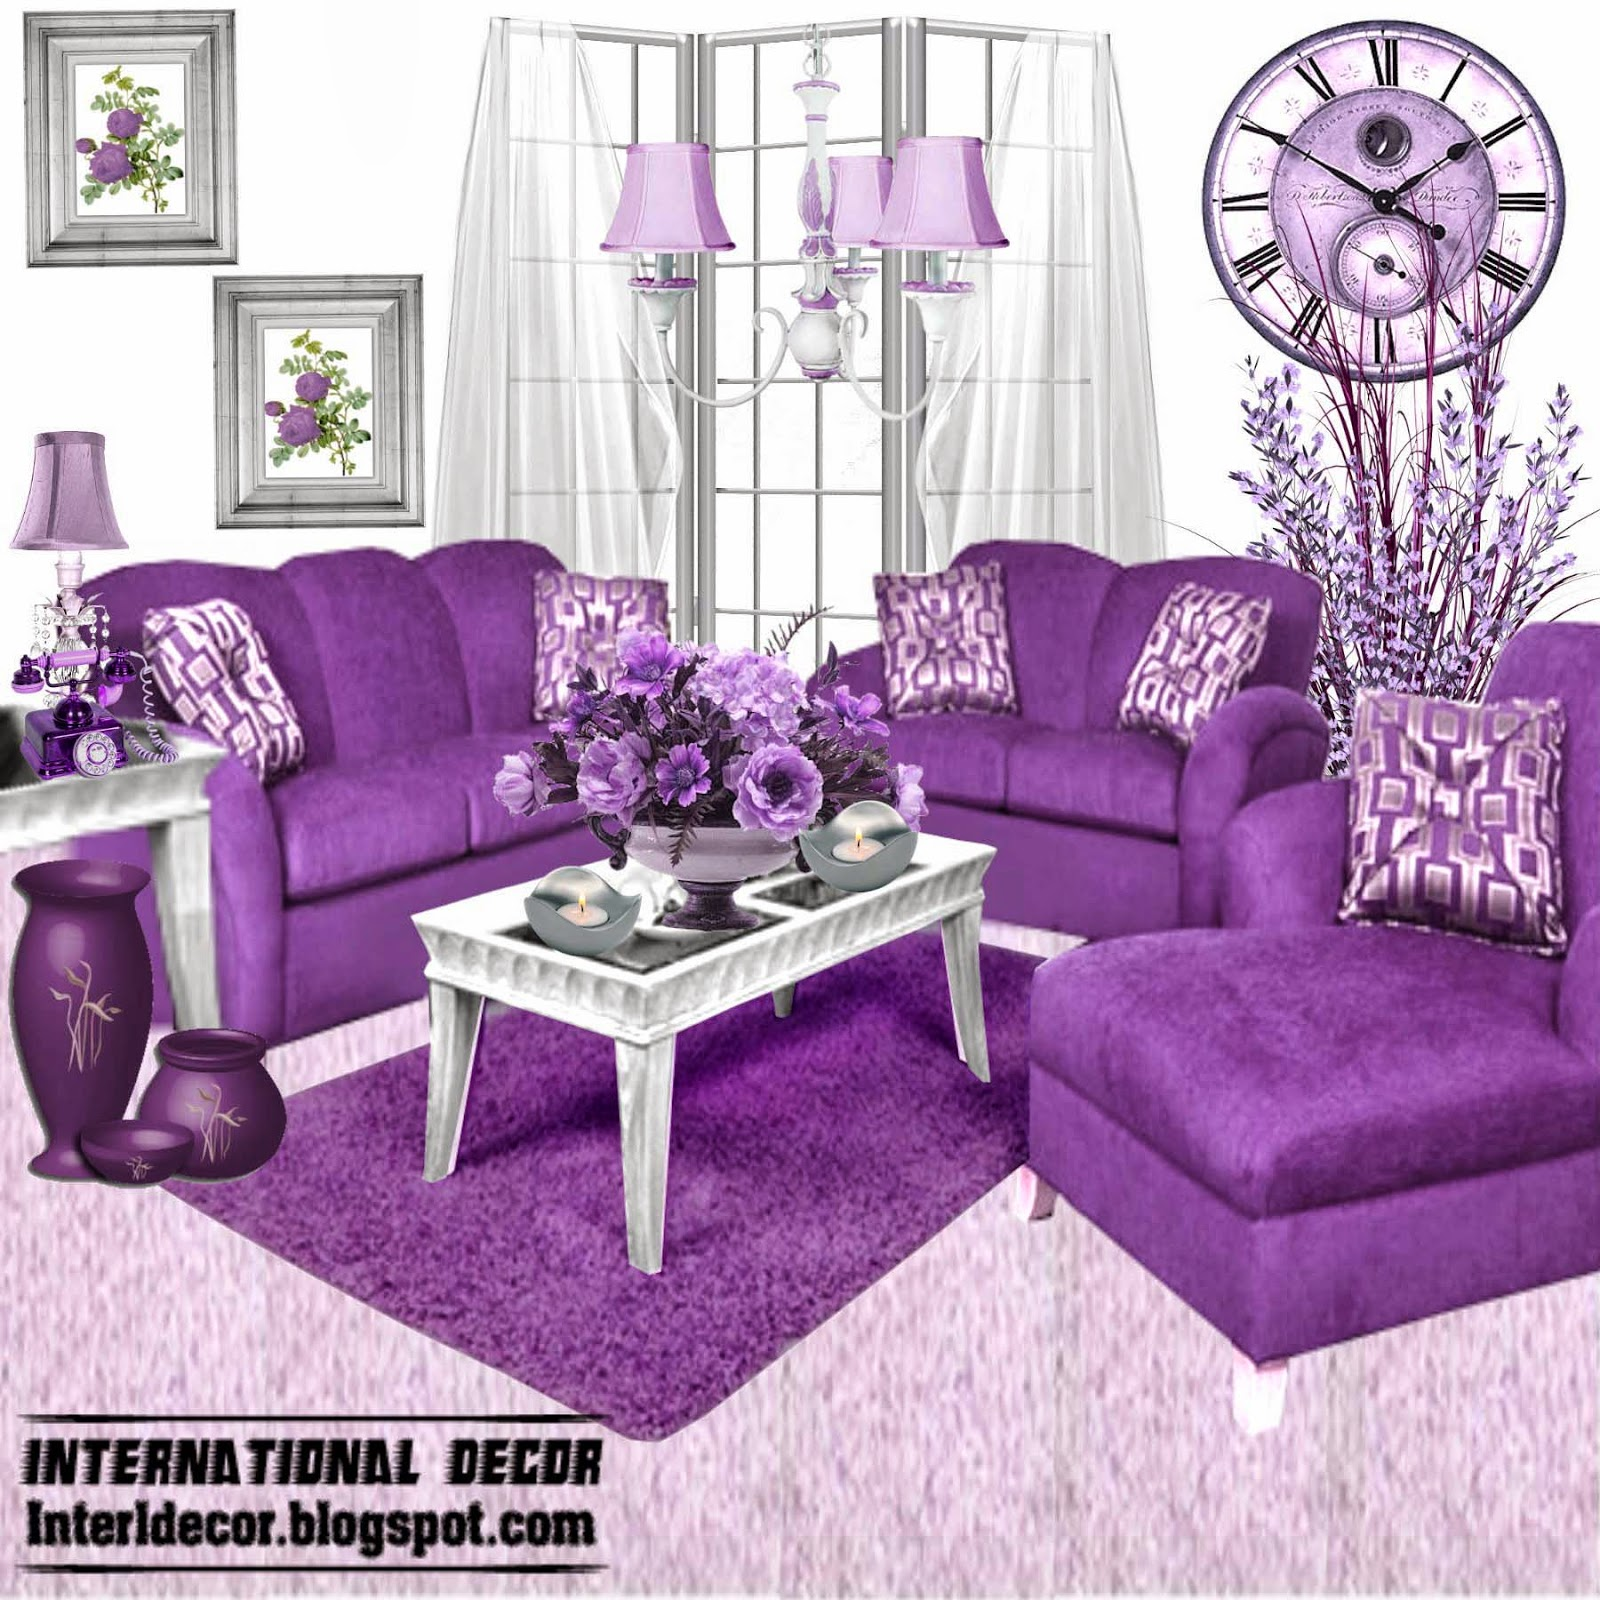 Purple furniture for the home pinterest purple for Sitting room chairs